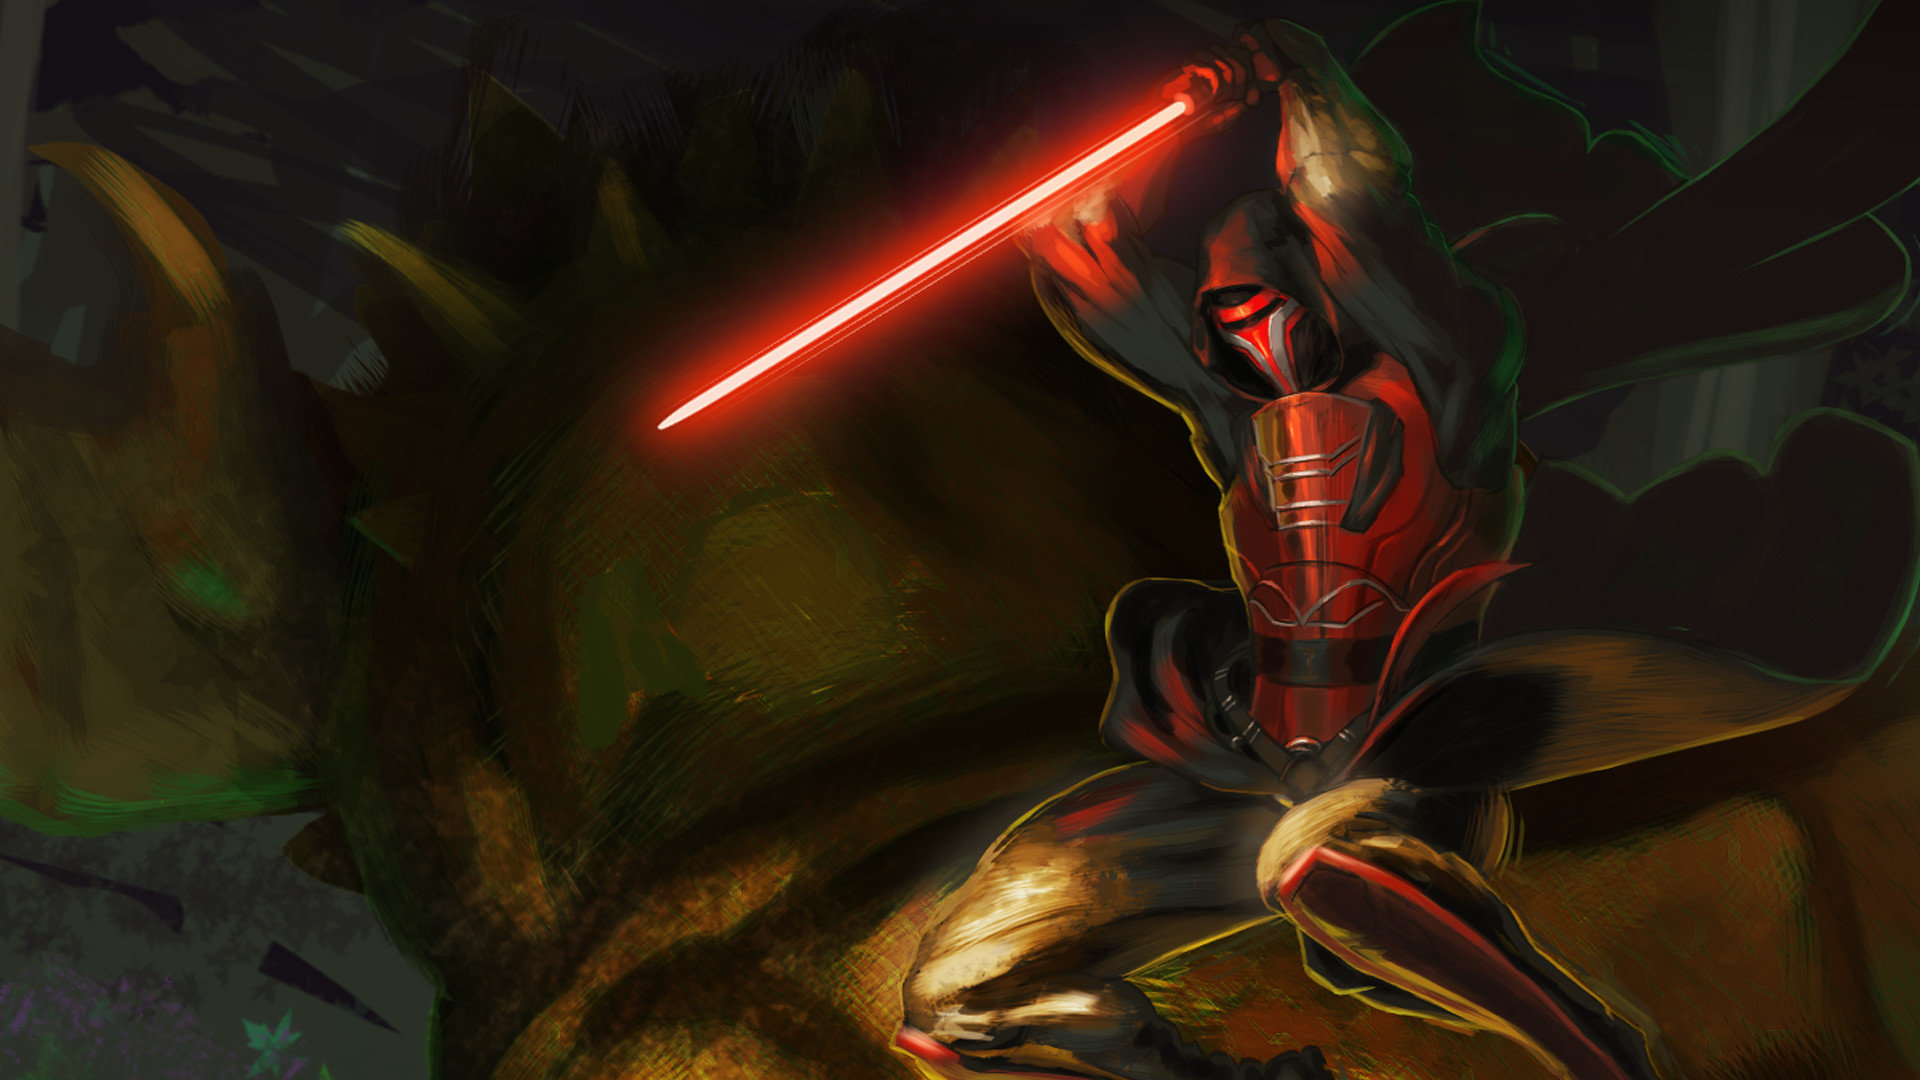 Darth Revan Wallpapers HD For Desktop Backgrounds